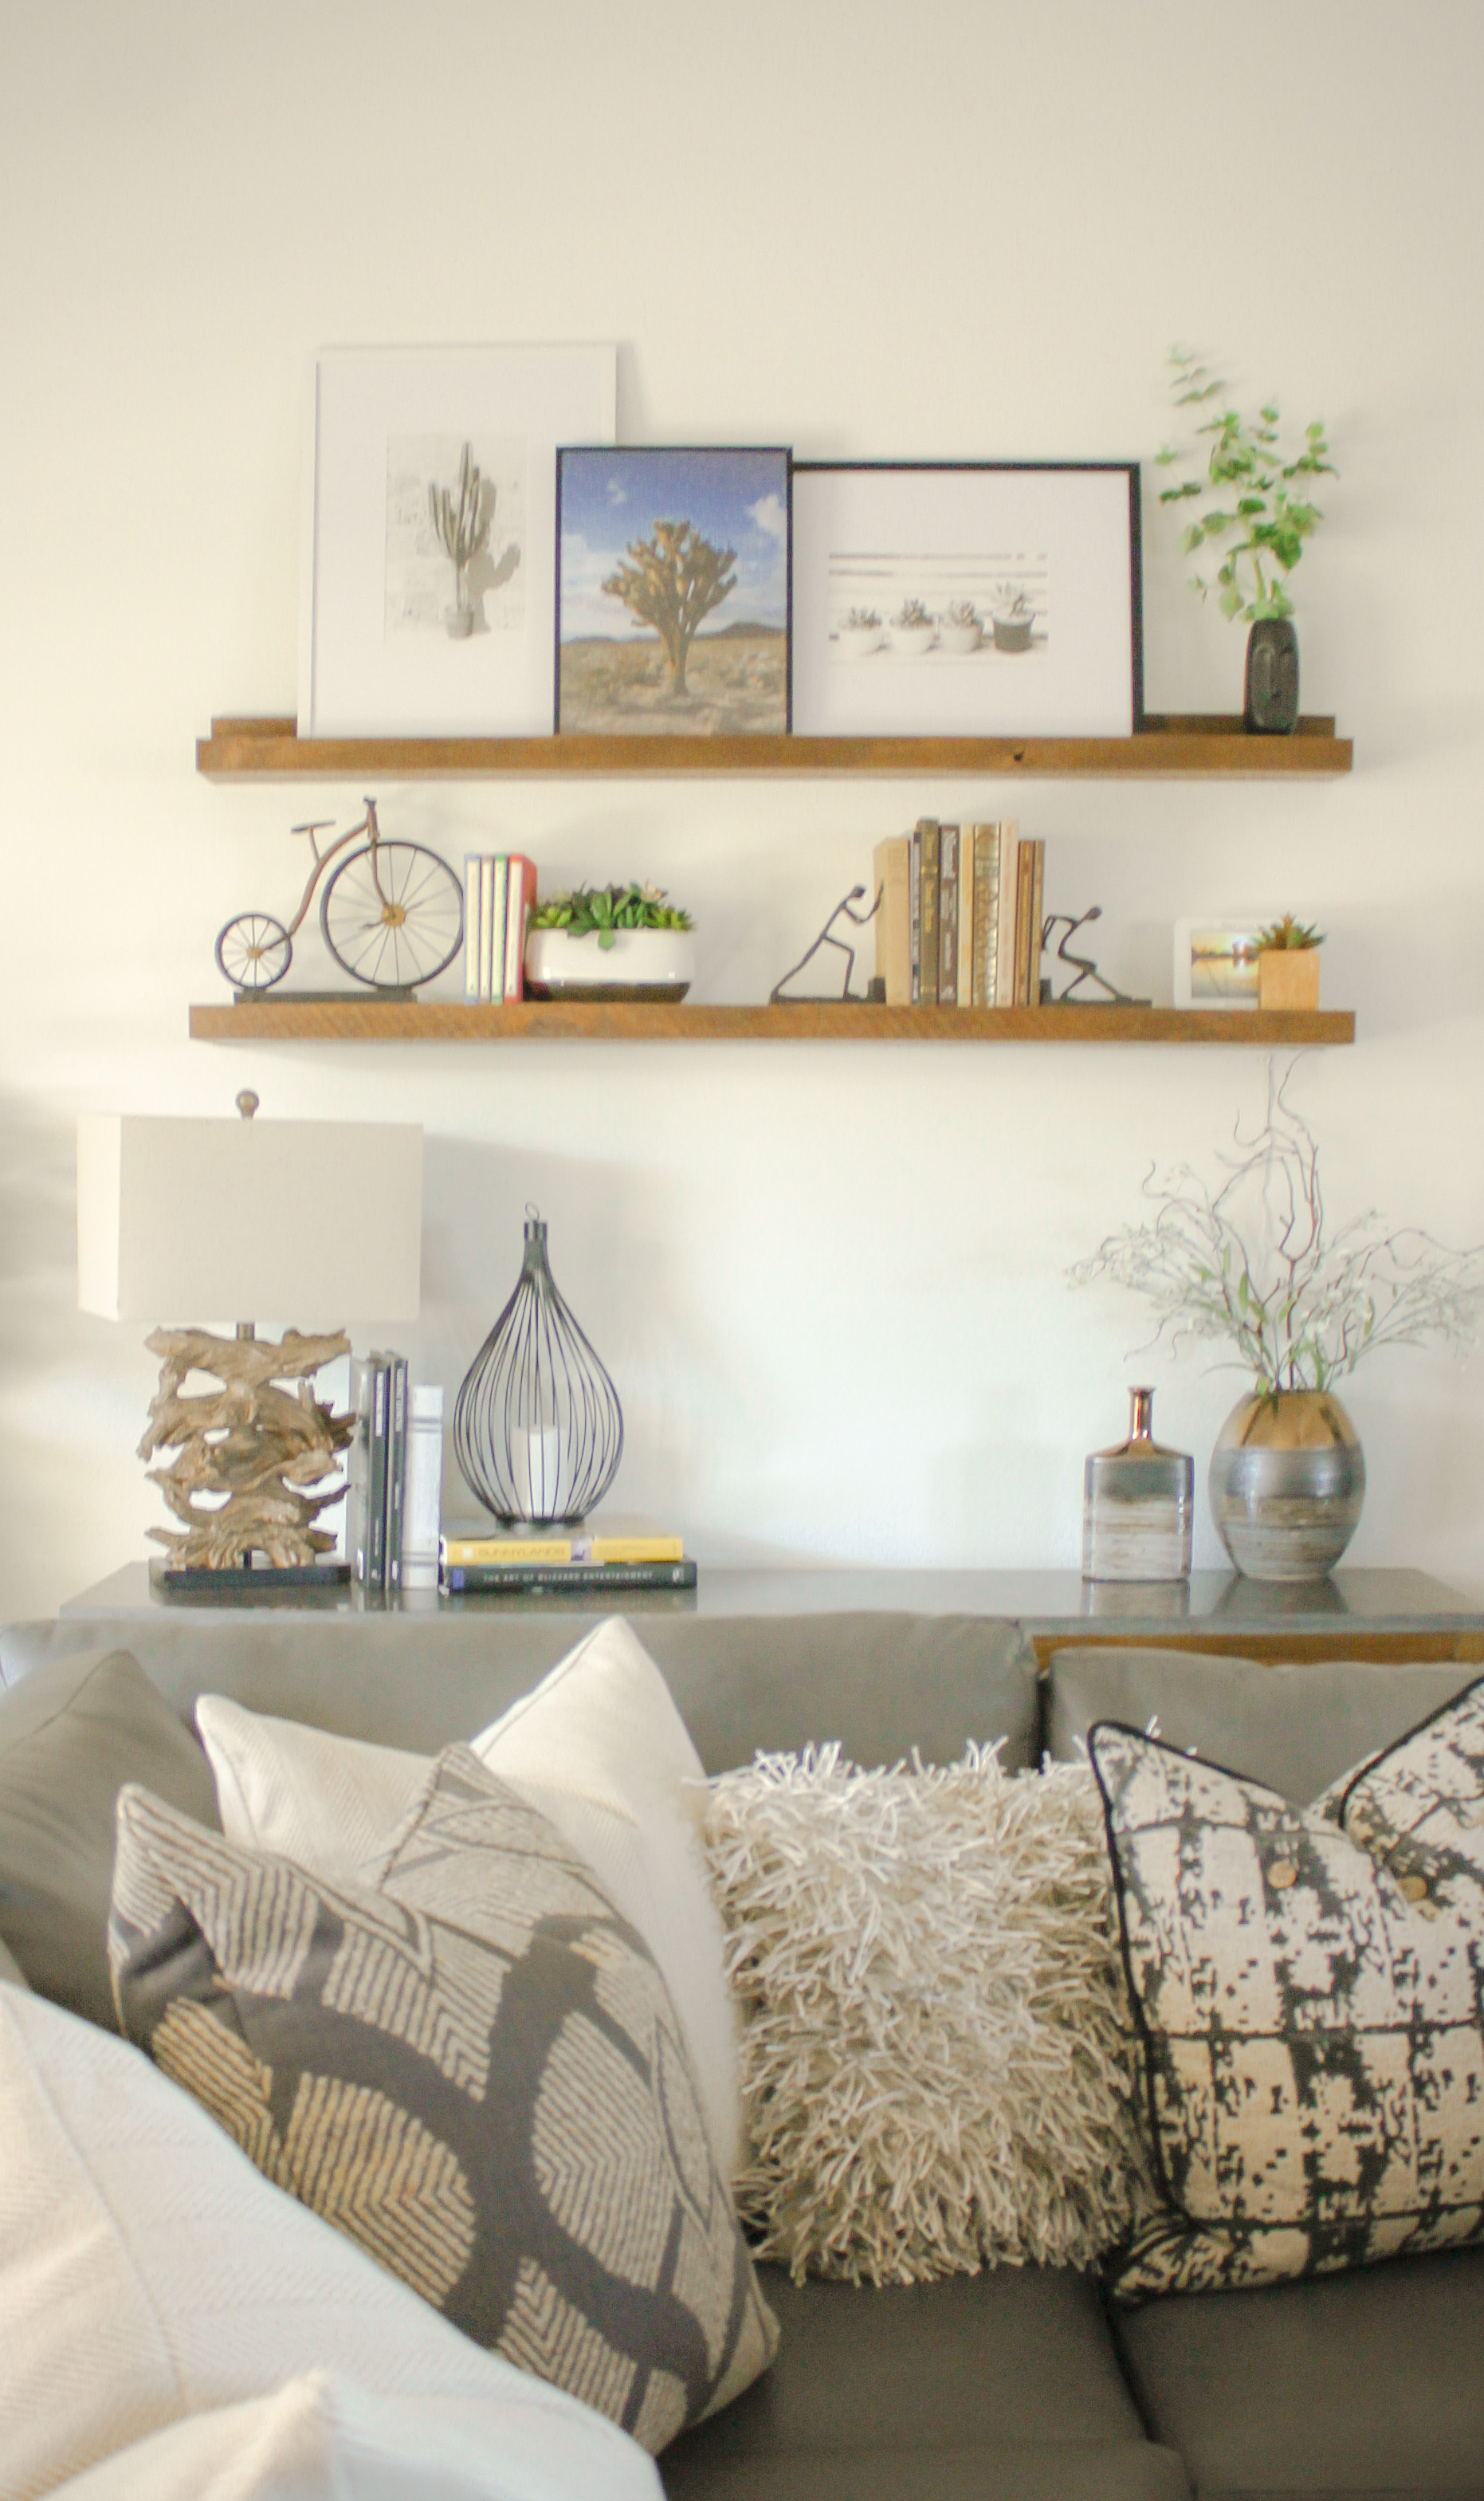 Entry Shelves I-1.jpg